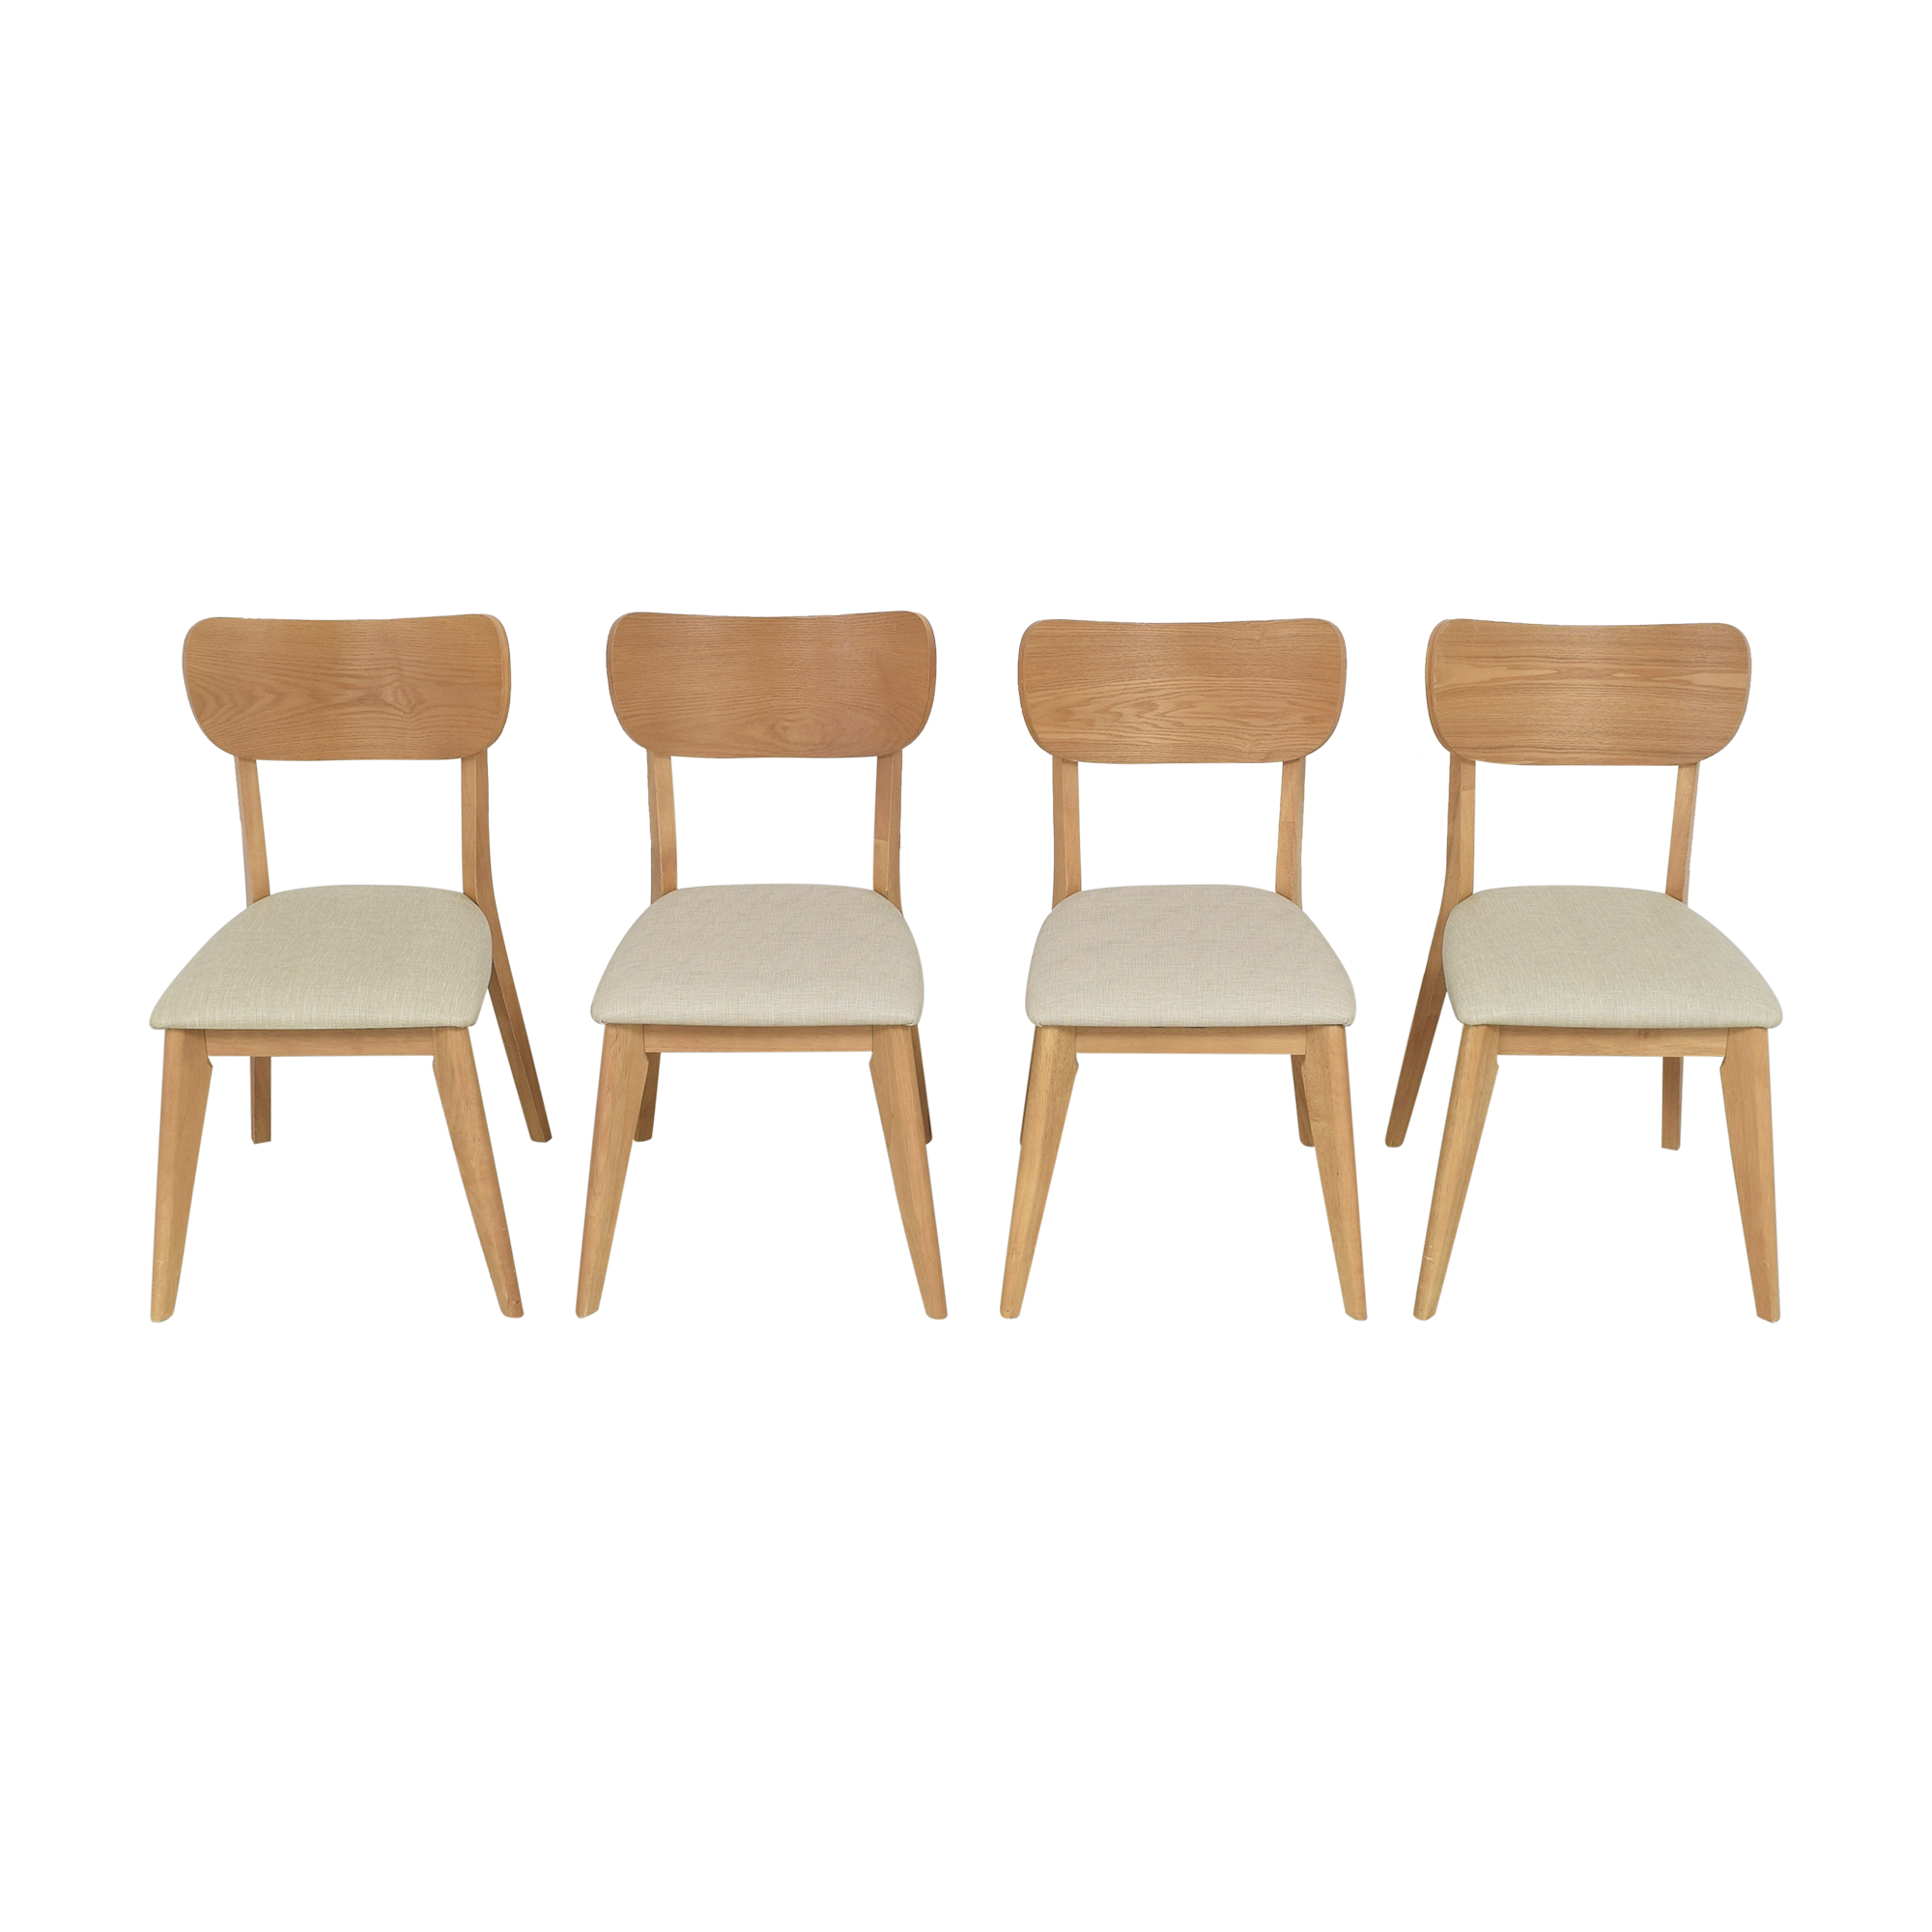 Mid-Century Modern Style Dining Chairs / Dining Chairs